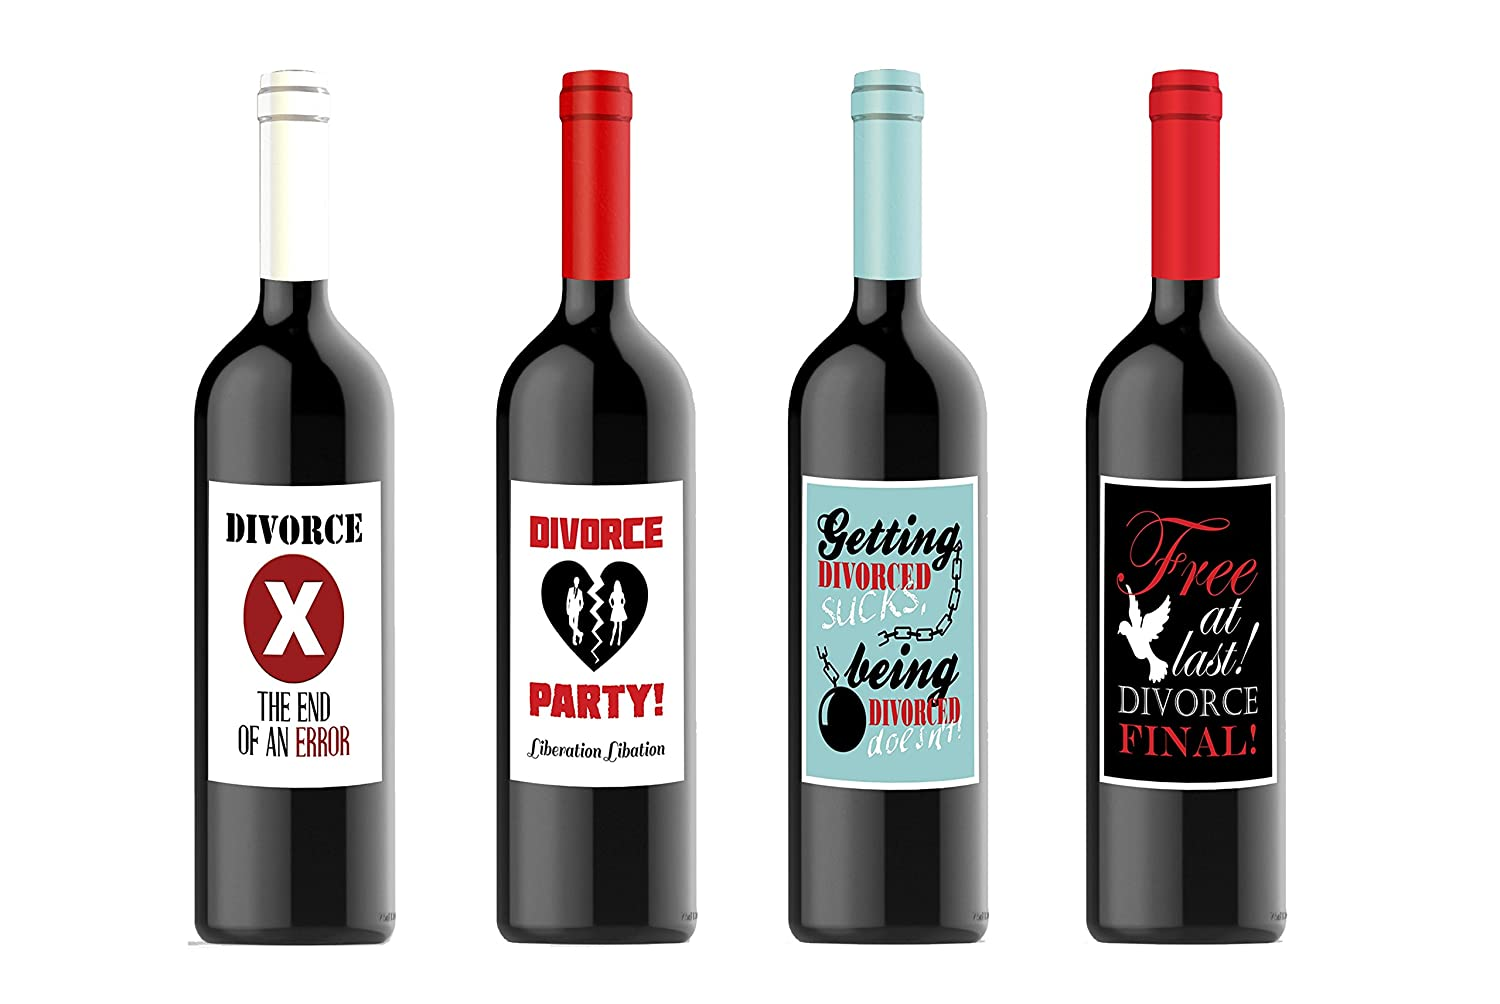 Divorce Party Celebration Custom Wine Labels for Four (4) Bottles 4.25 x 5.5 Each By Definition EBE-DWN